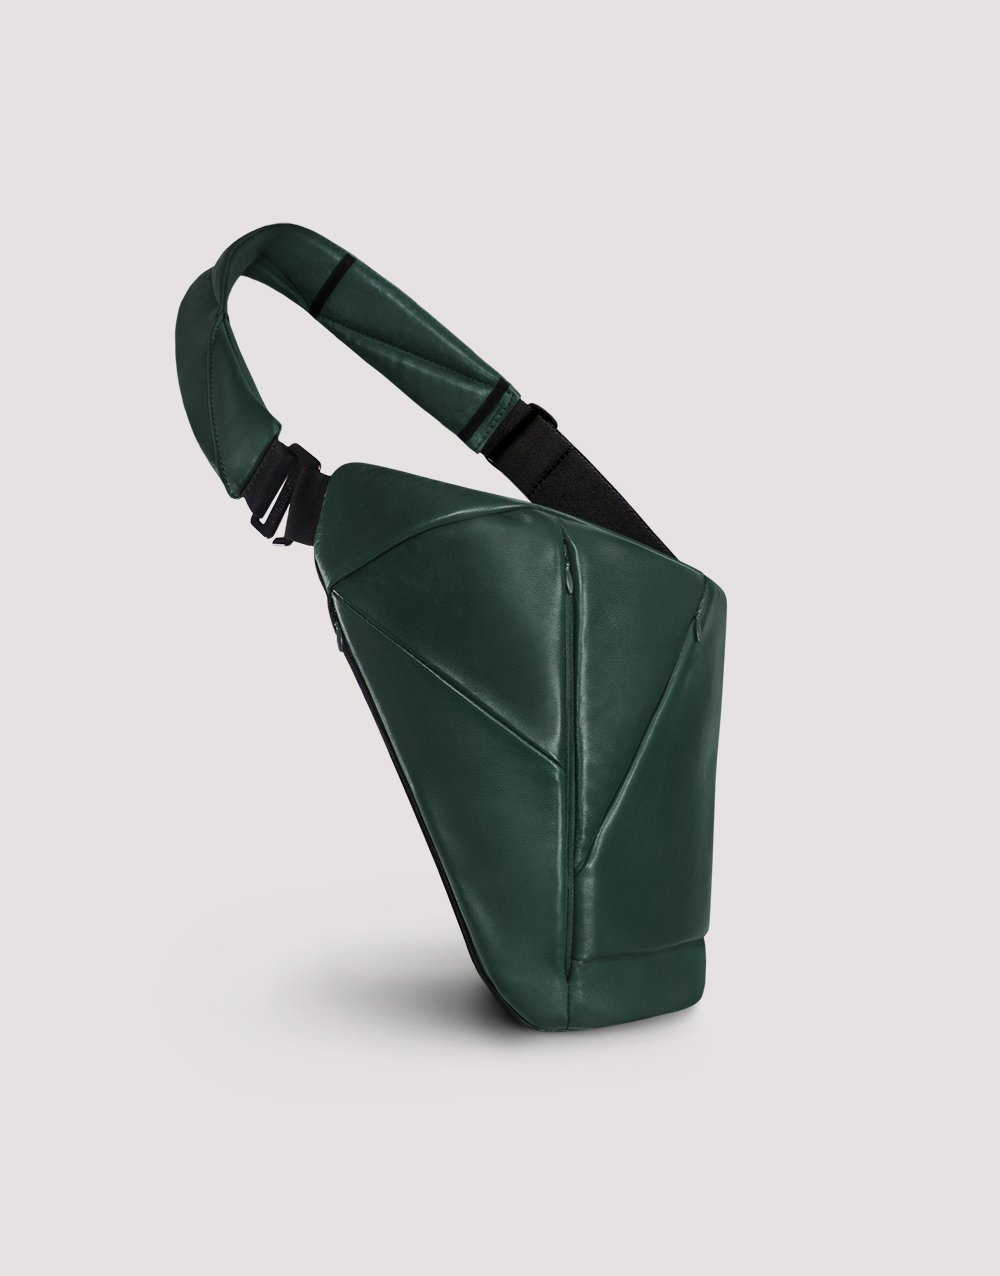 Green leather crossbody bag with many pockets by Baggizmo